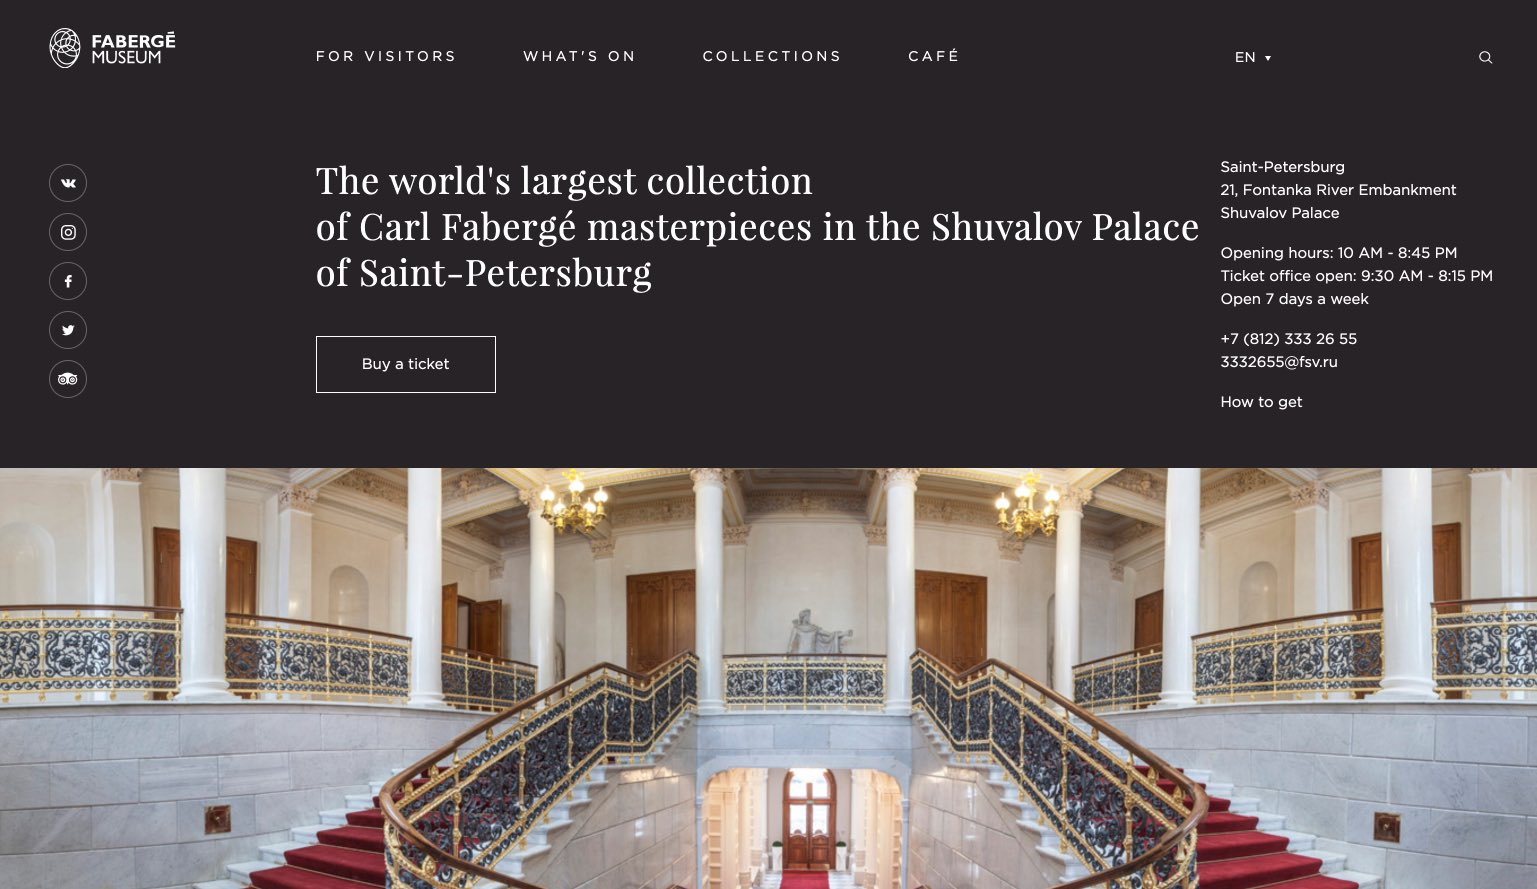 Website des Fabergé-Museums in St. Petersburg